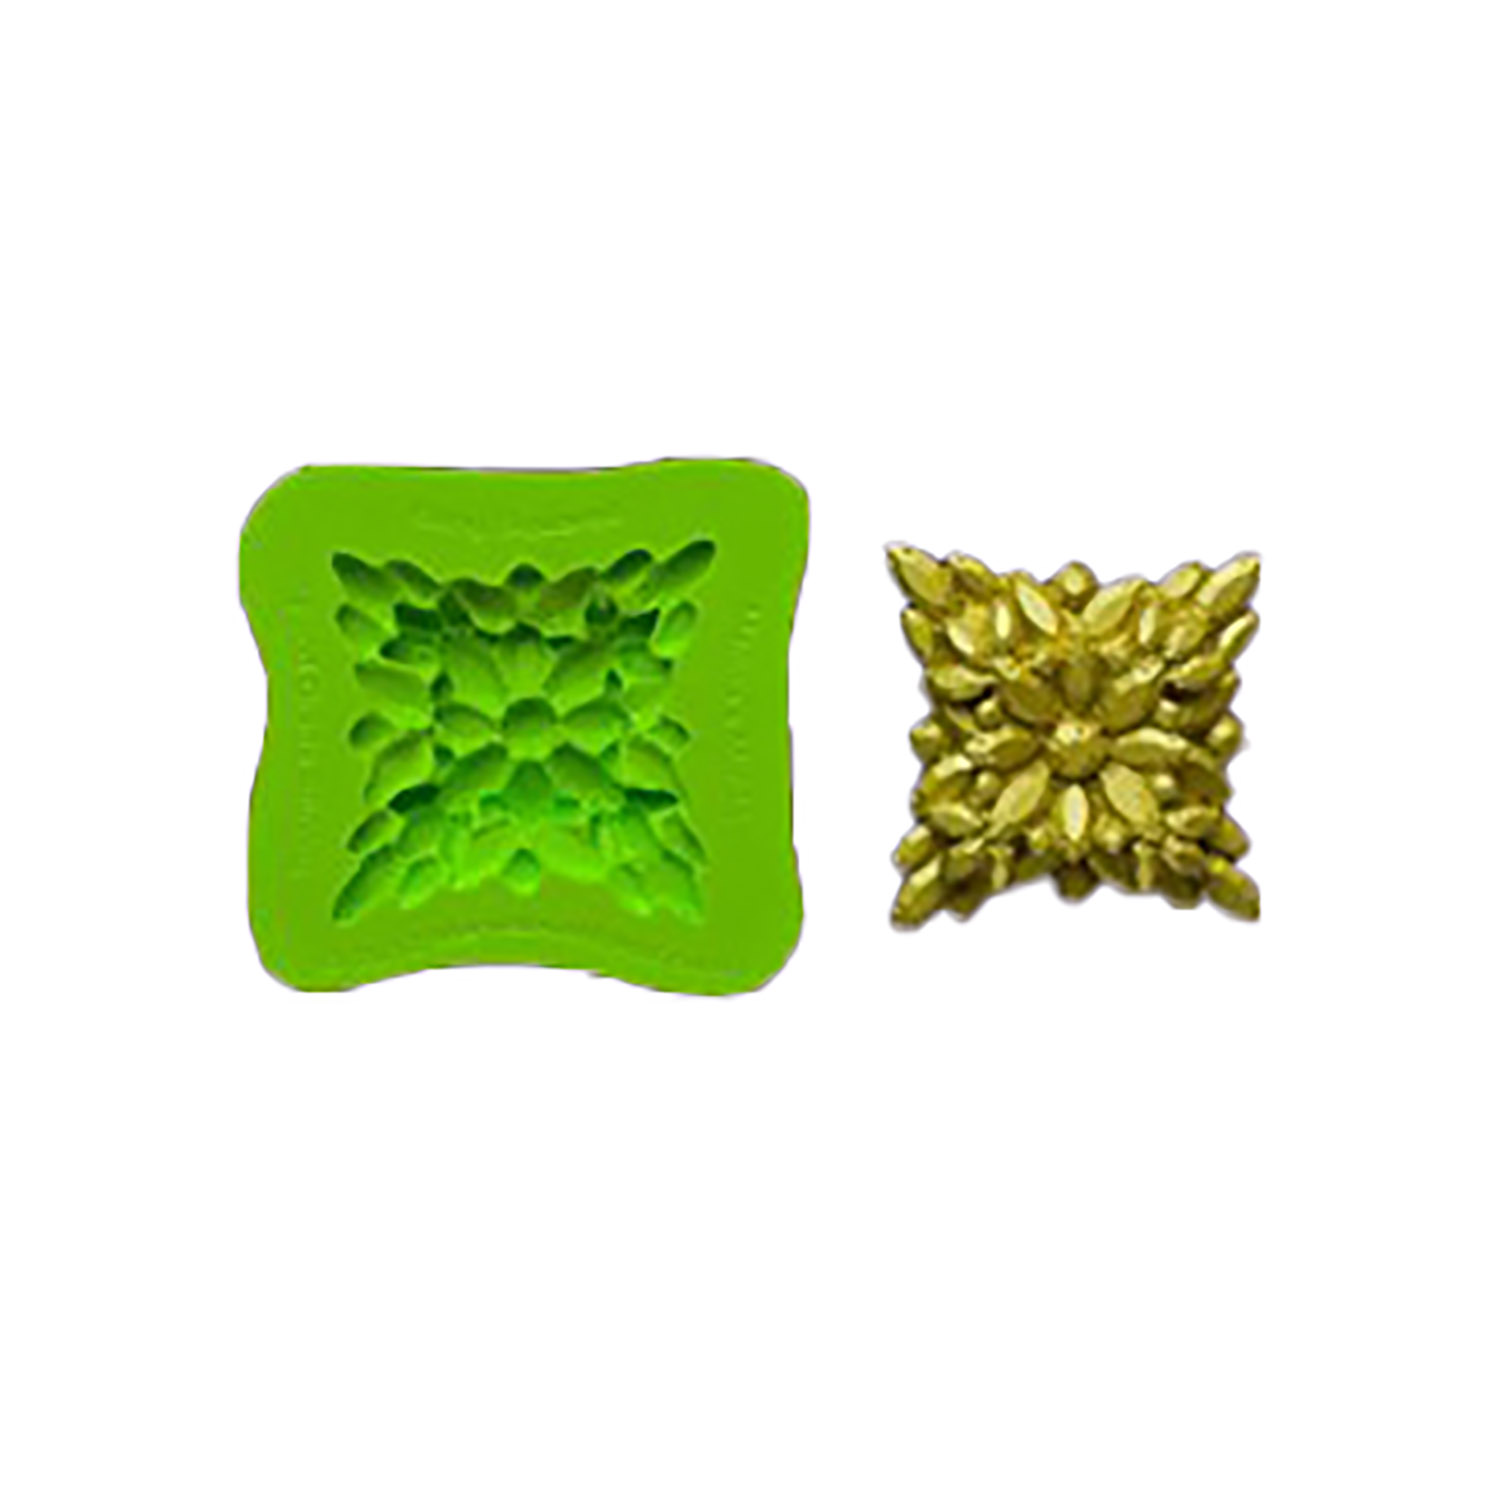 Bling Squared Silicone Brooch Mold